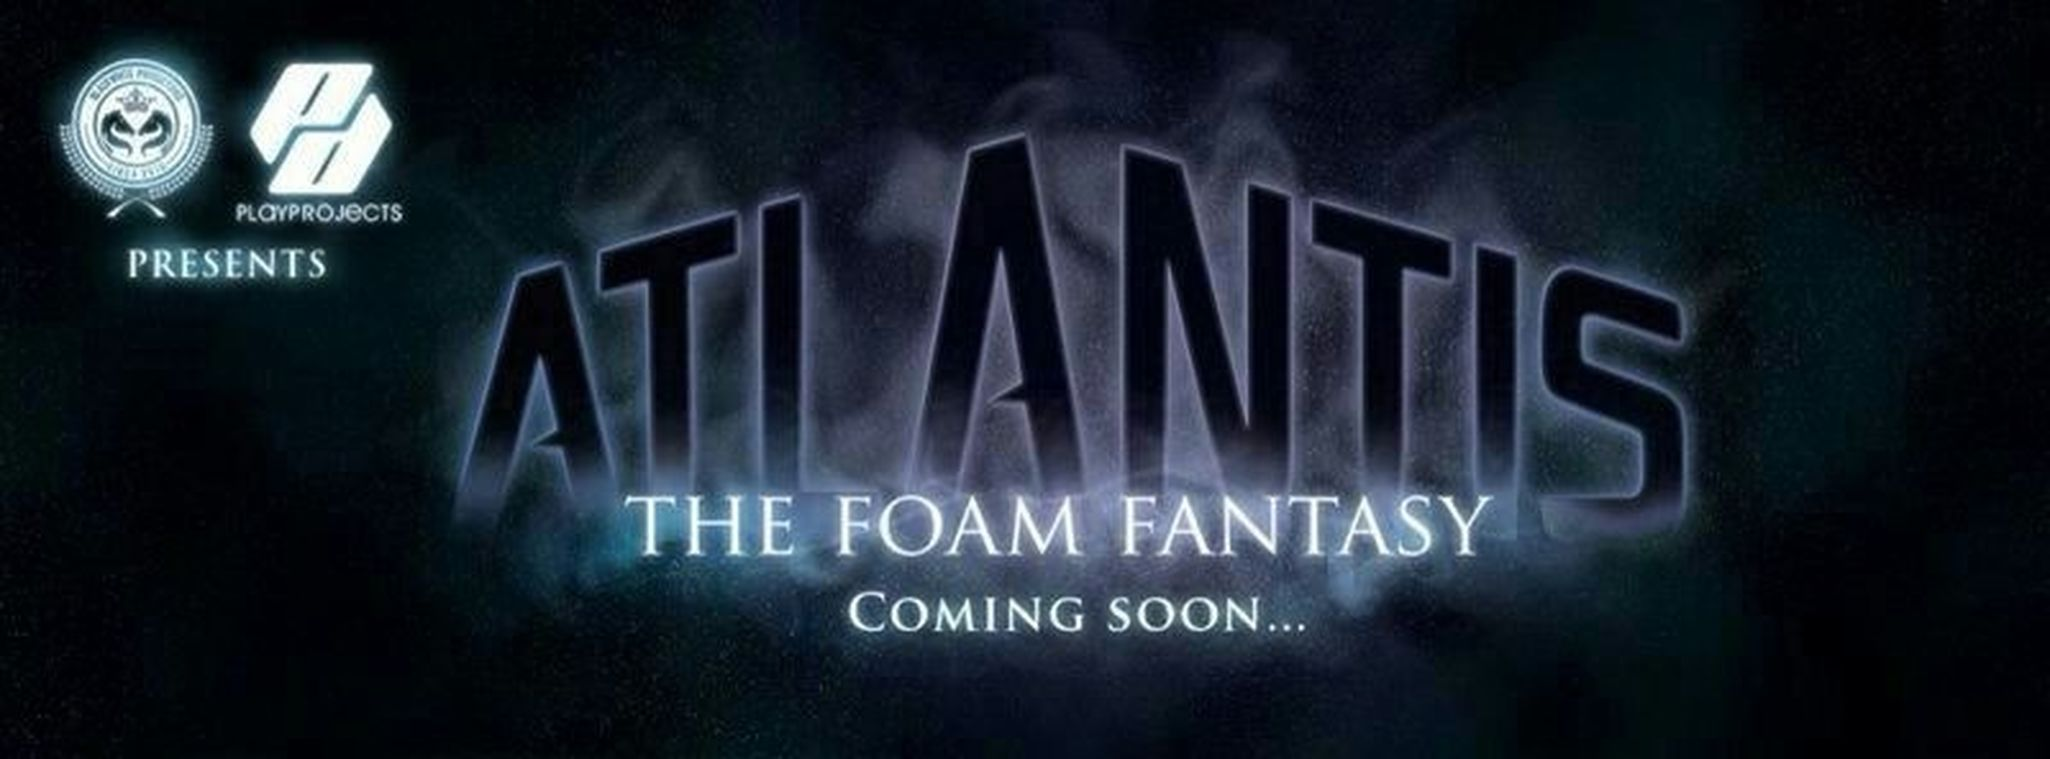 Azzura Atlantis foam party this coming 8th February pm me for details :)